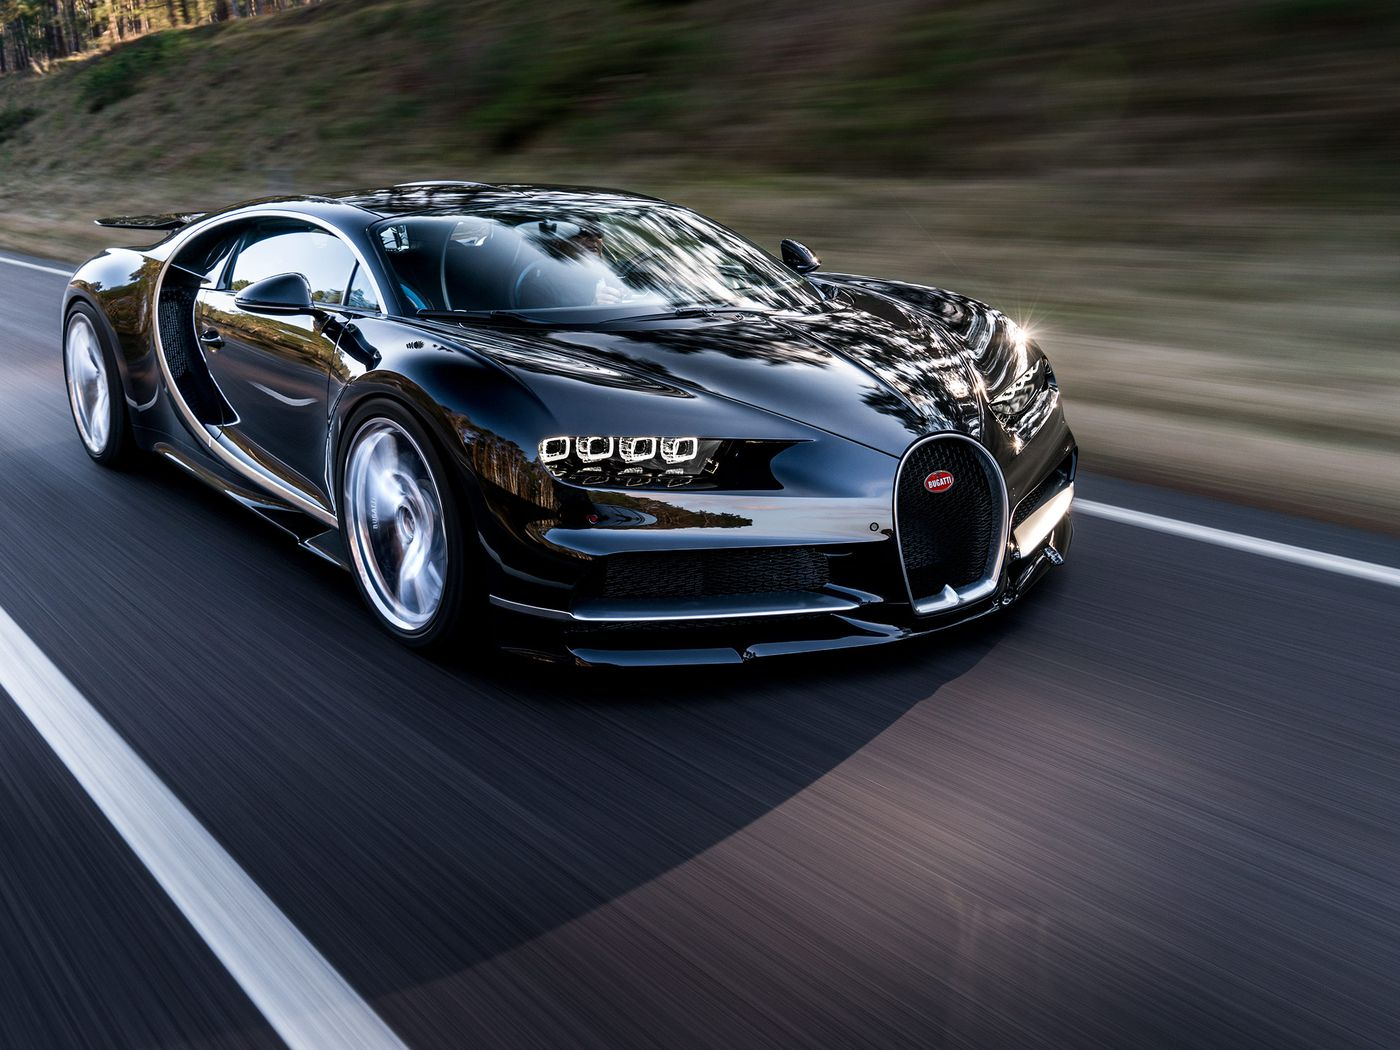 The Unbelievable 2 4 Million Bugatti Chiron In Pictures The Verge